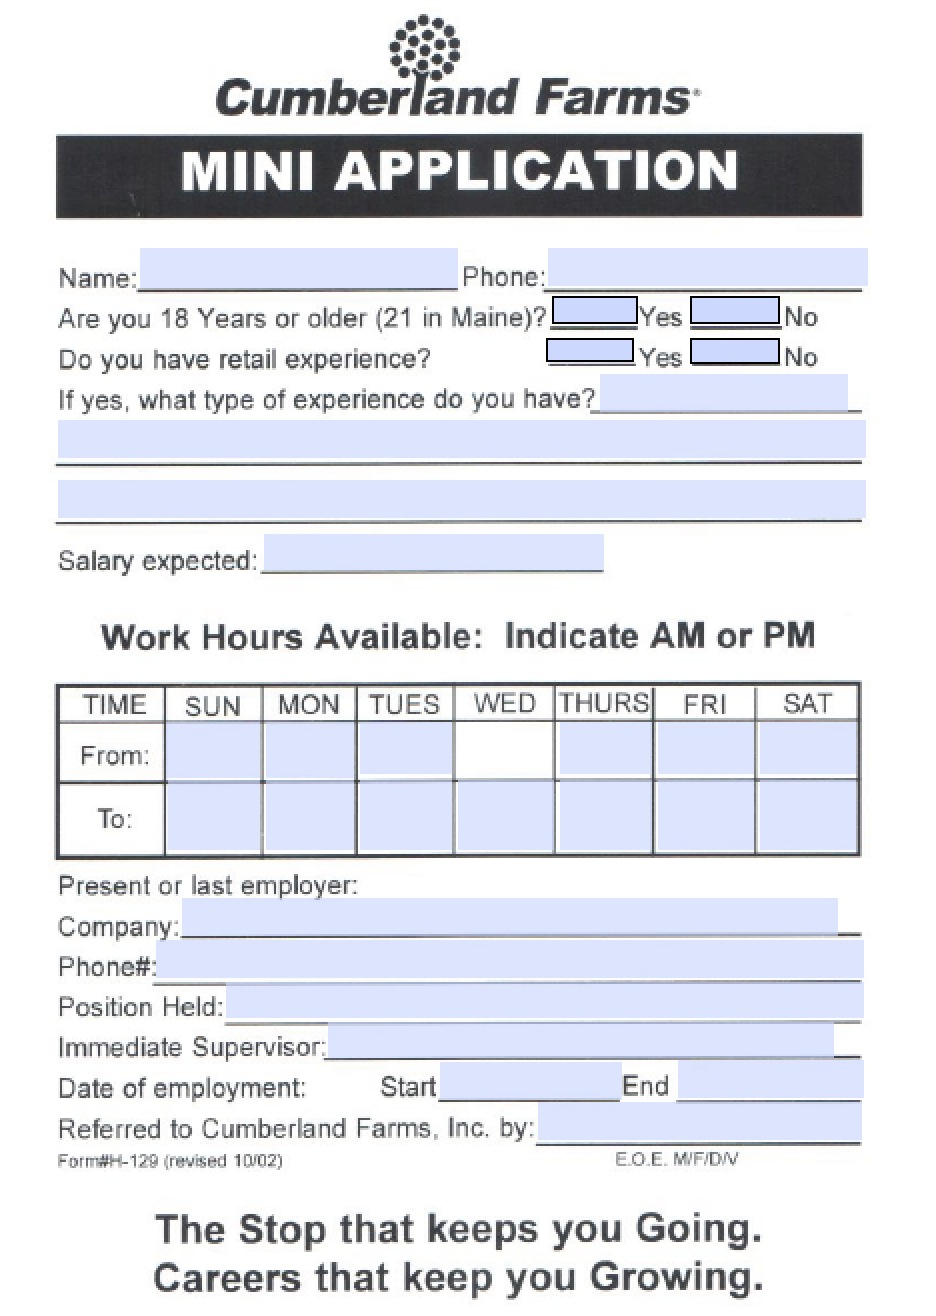 berland-farms-mini-job-application Job Application Form For Gas Station on sonic printable, format for, blank generic, civil service, home depot, foot locker, free printable sample, example filled out,